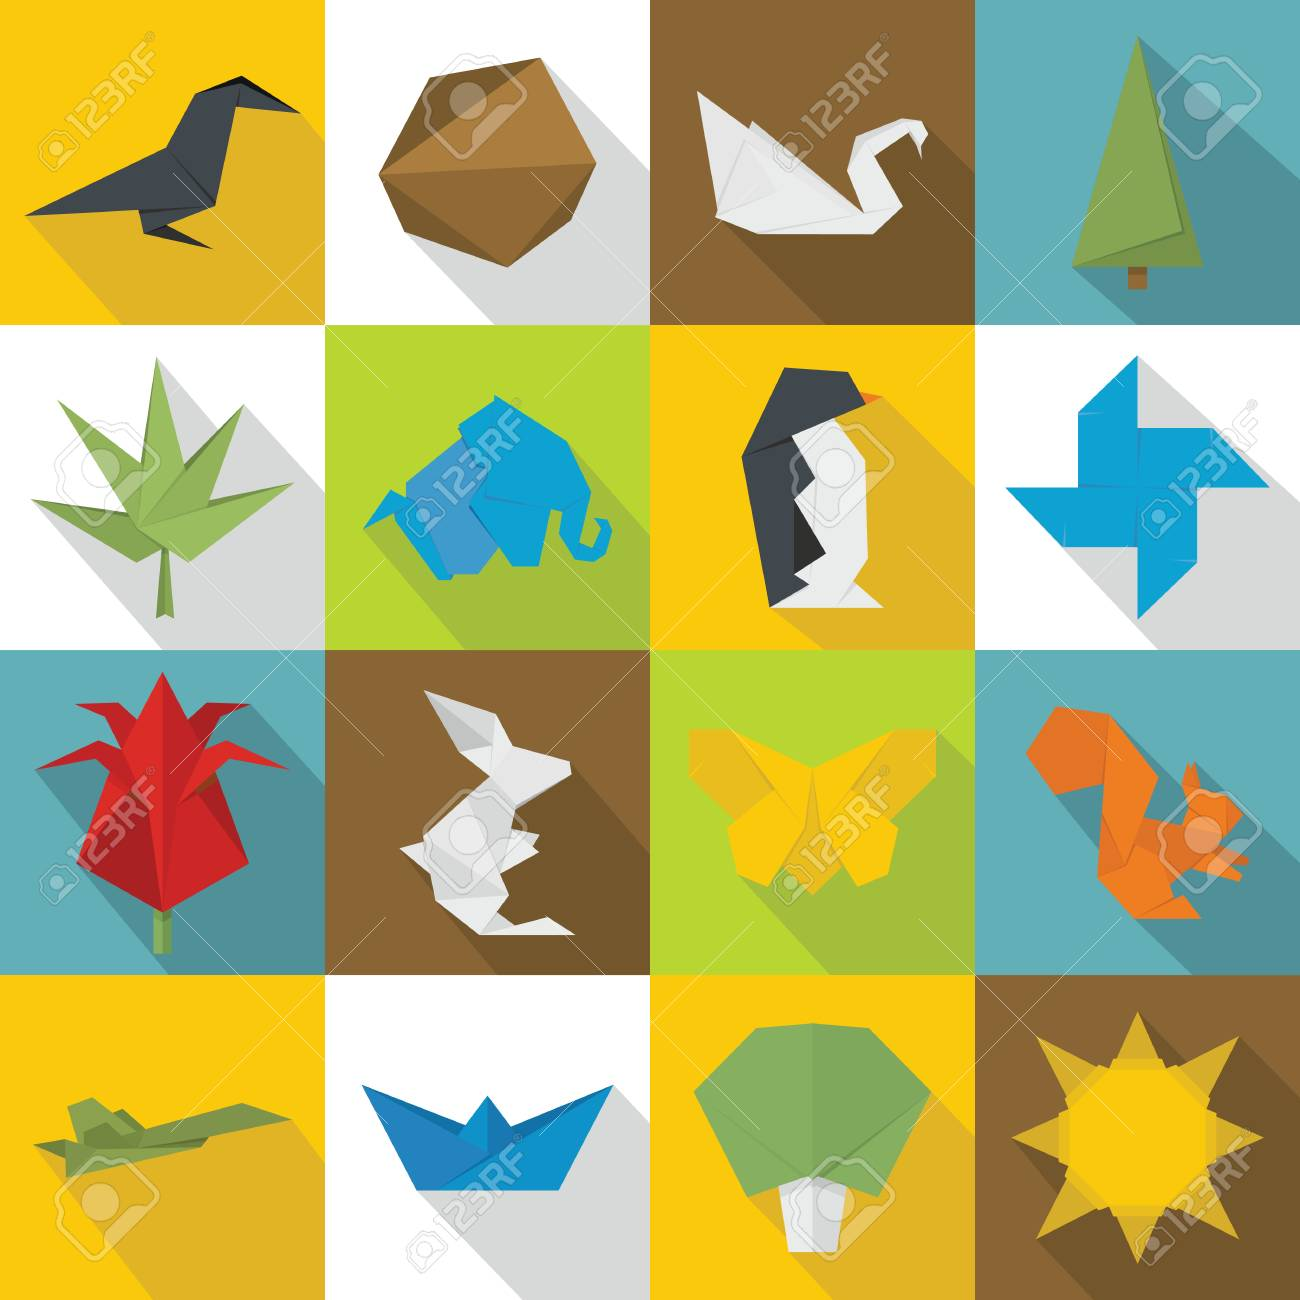 Origami Icons Set Flat Illustration Of 16 Vector For Web Stock